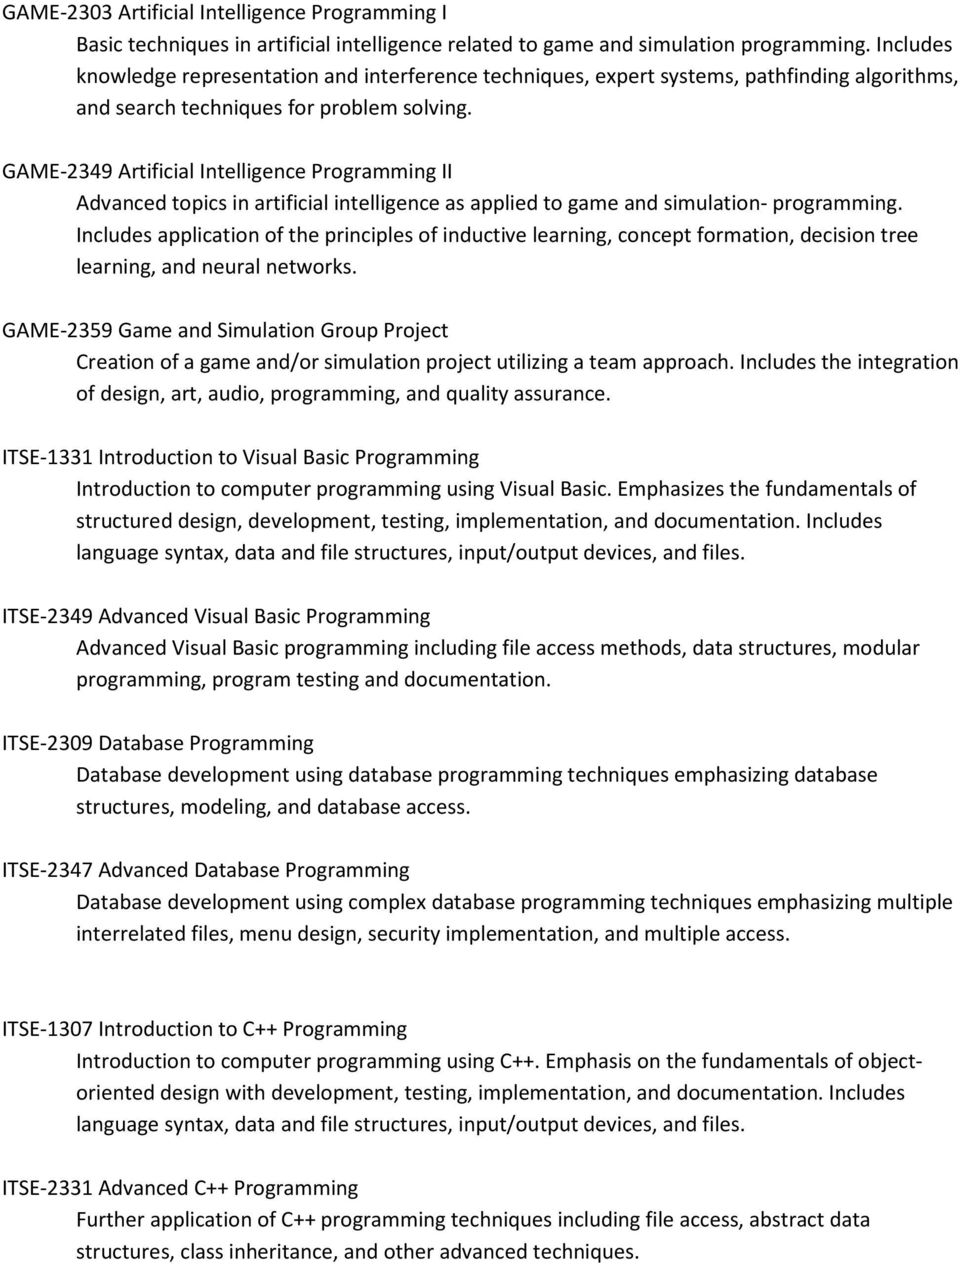 GAME-2349 Artificial Intelligence Programming II Advanced topics in artificial intelligence as applied to game and simulation- programming.